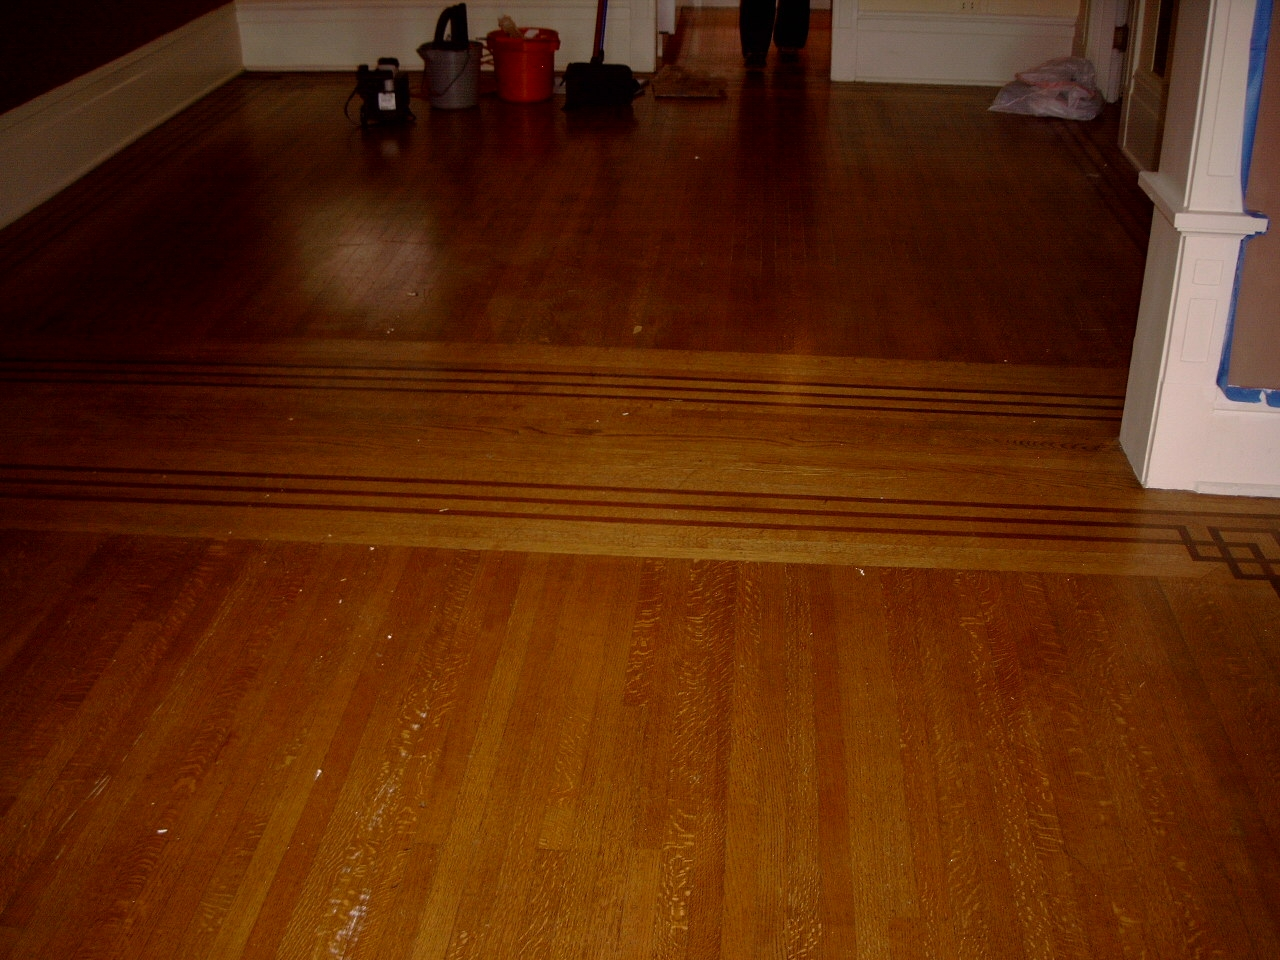 Wood Preen Liquid Floor Wax